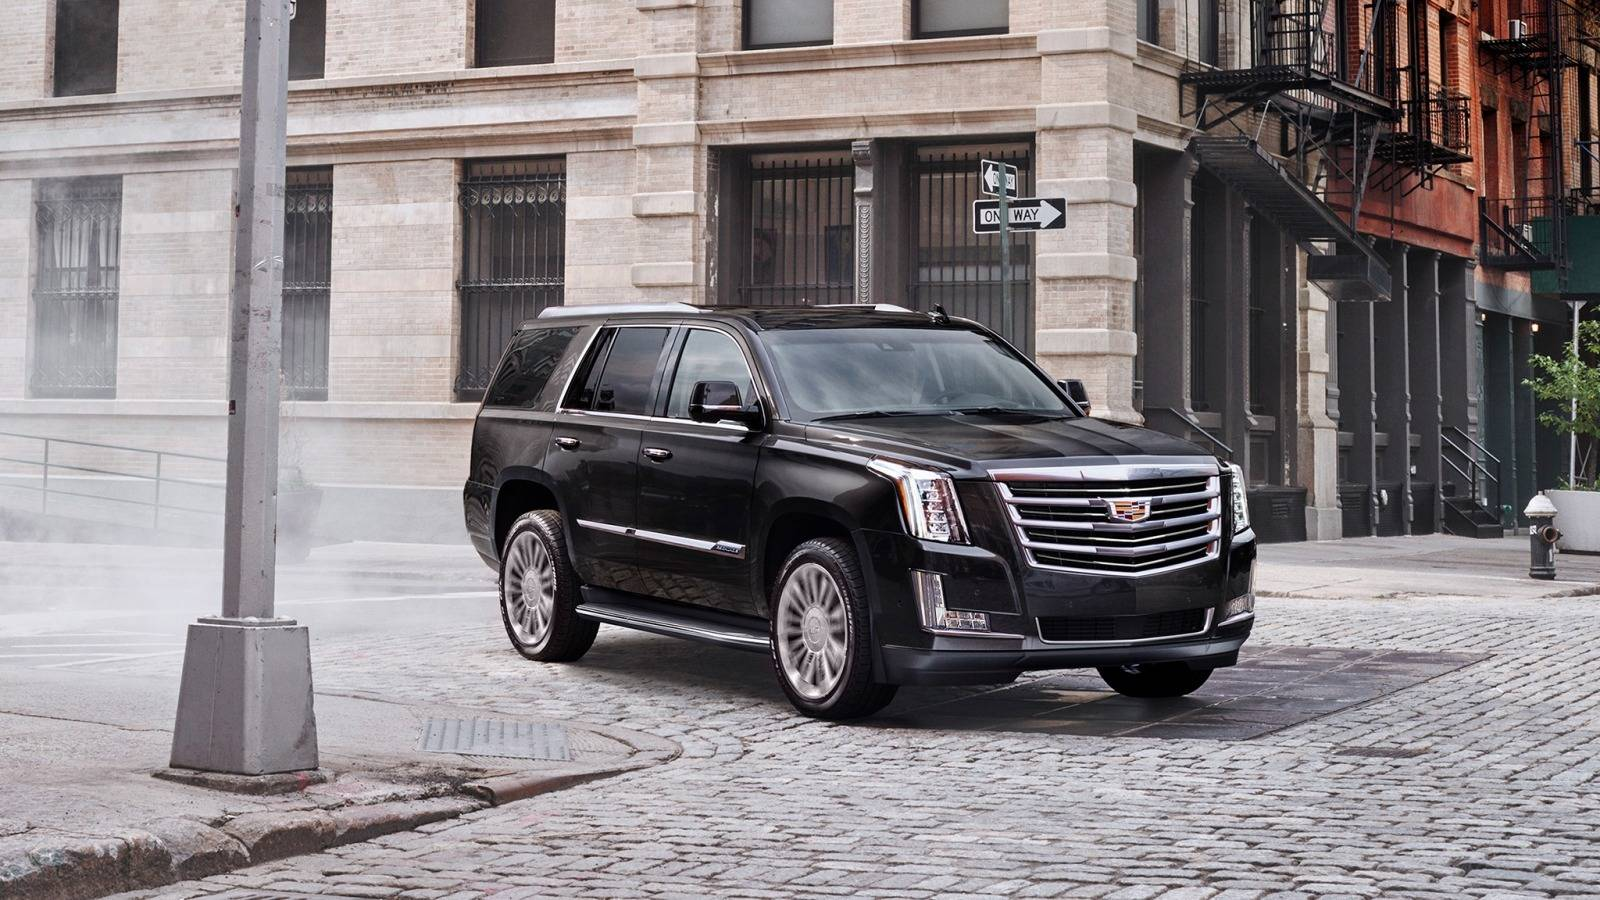 43 The Best 2019 Cadillac Escalade Luxury Suv Release Date and Concept